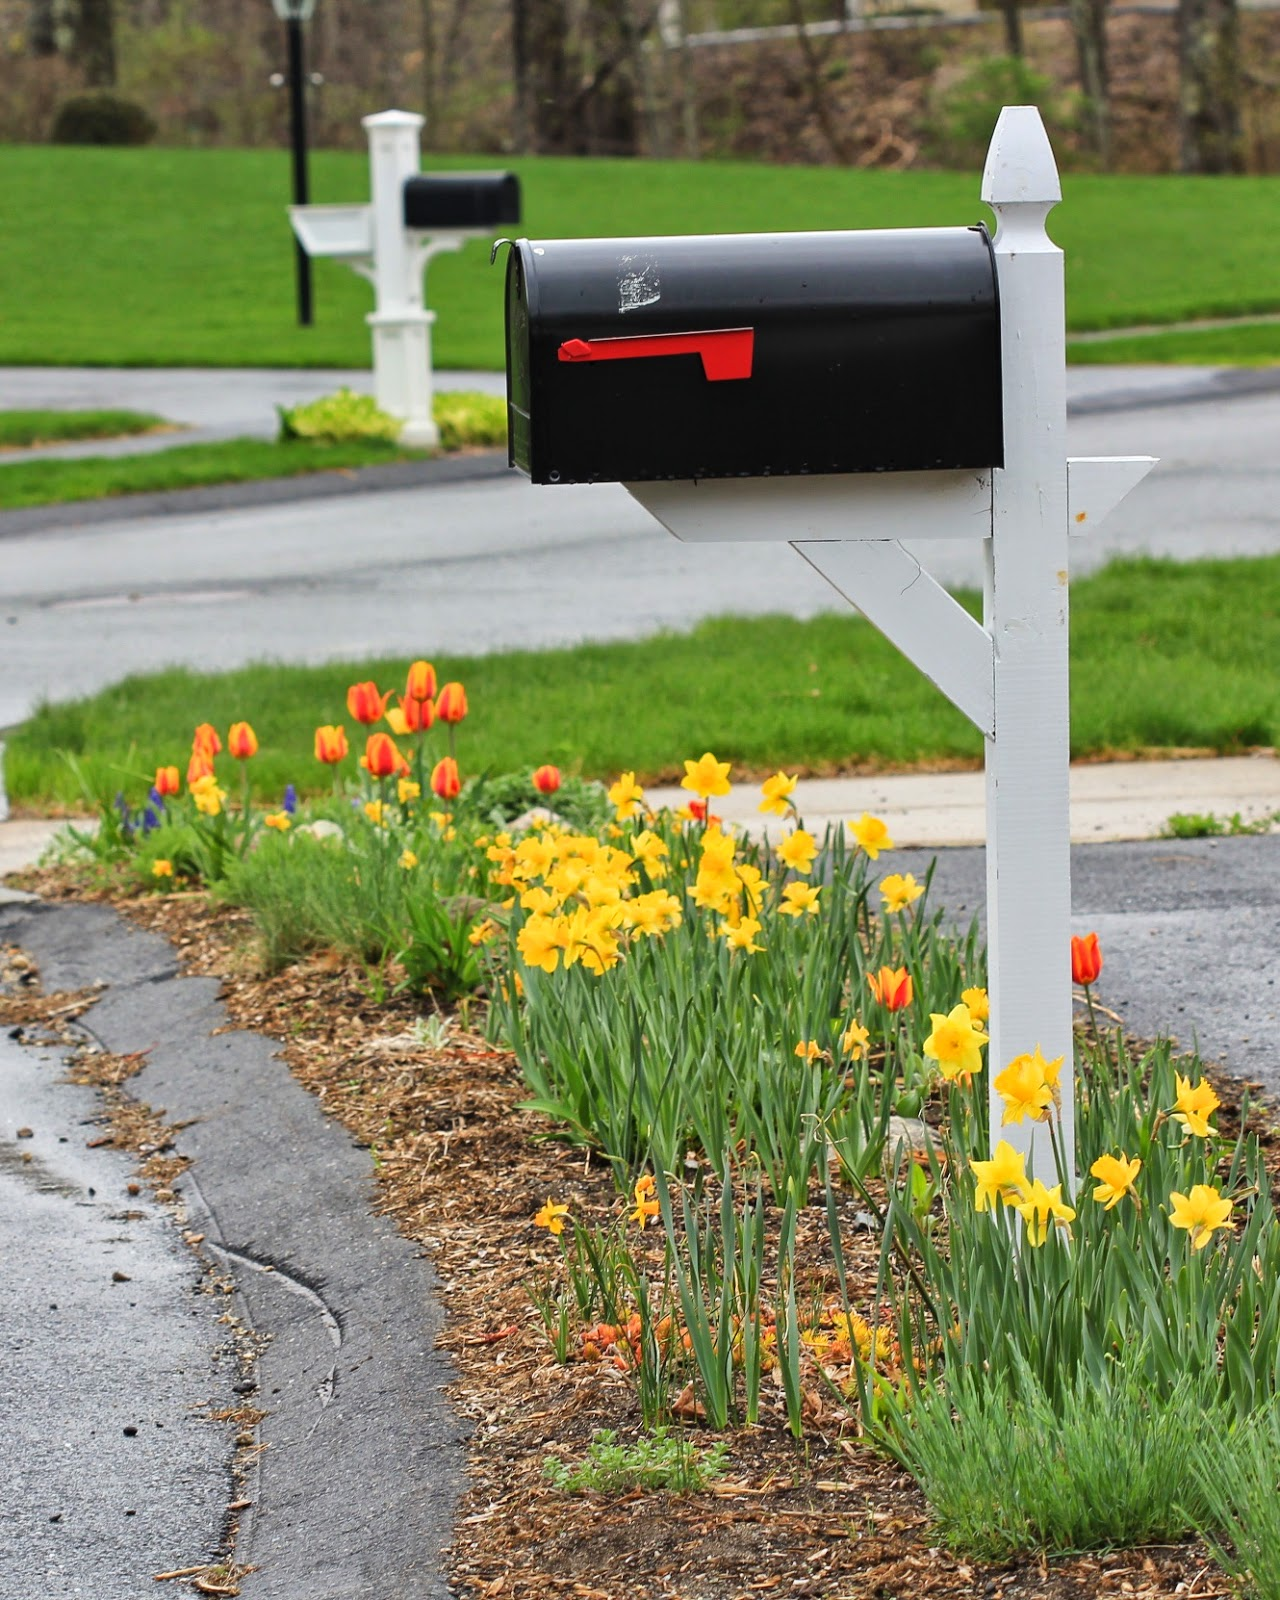 ... The Strip Between The Street And The Sidewalk Was An Uneven And  Unsightly Mess Of Weeds. To One Side Of The Driveway, The Hellstrip Was ...